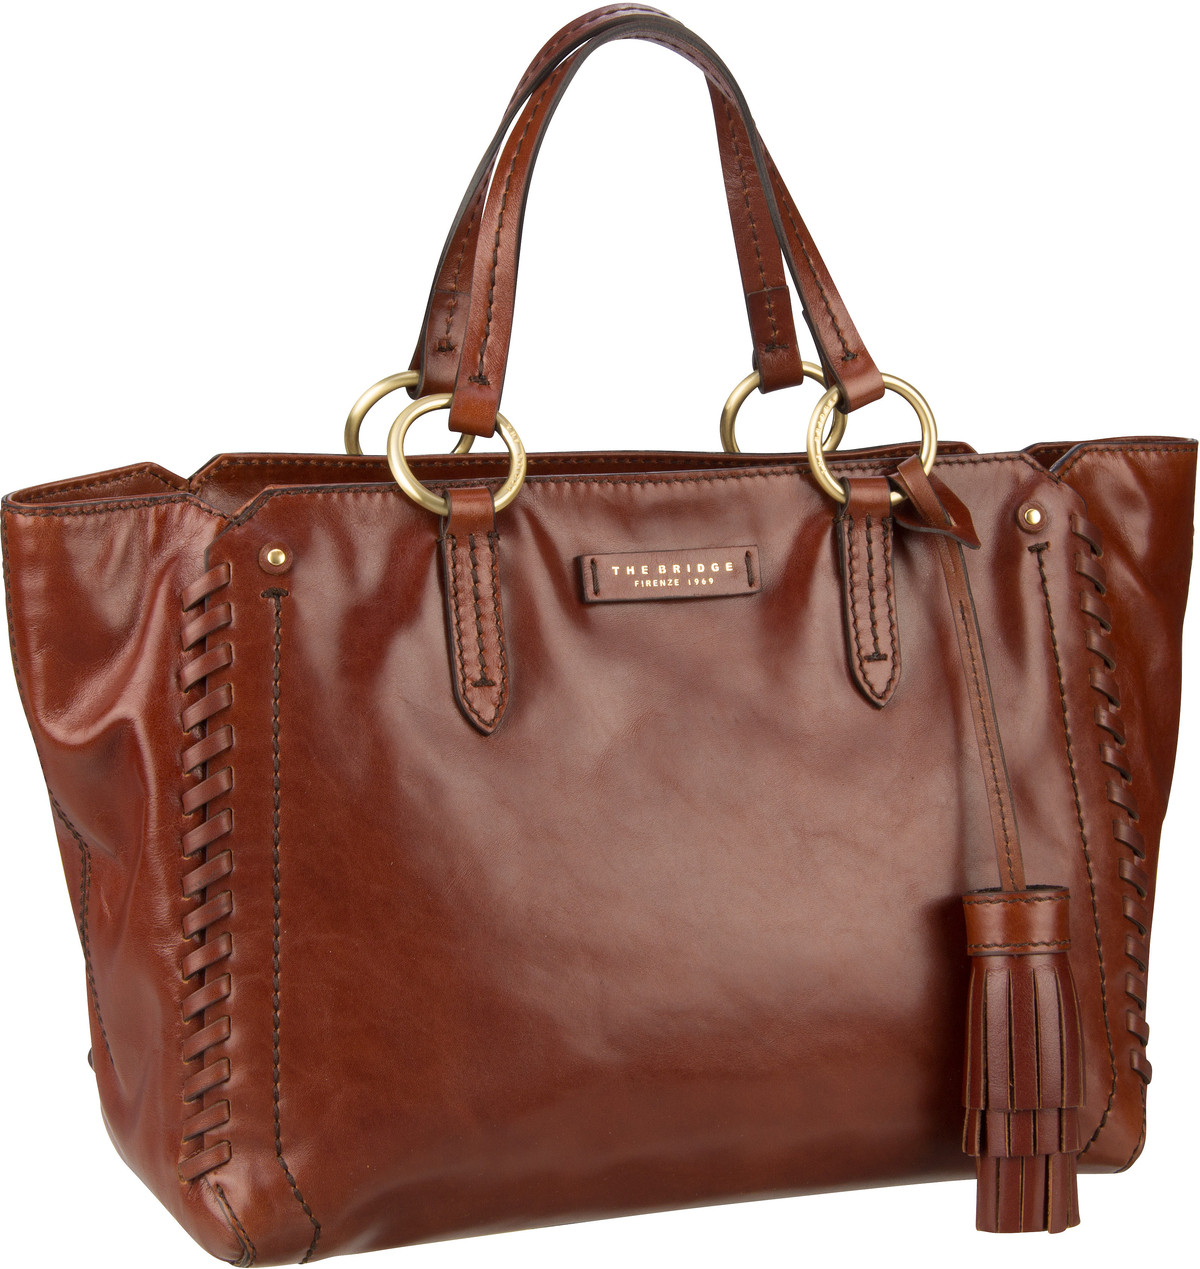 Handtasche Vallombrosa Shopper 5919 Marrone/Oro